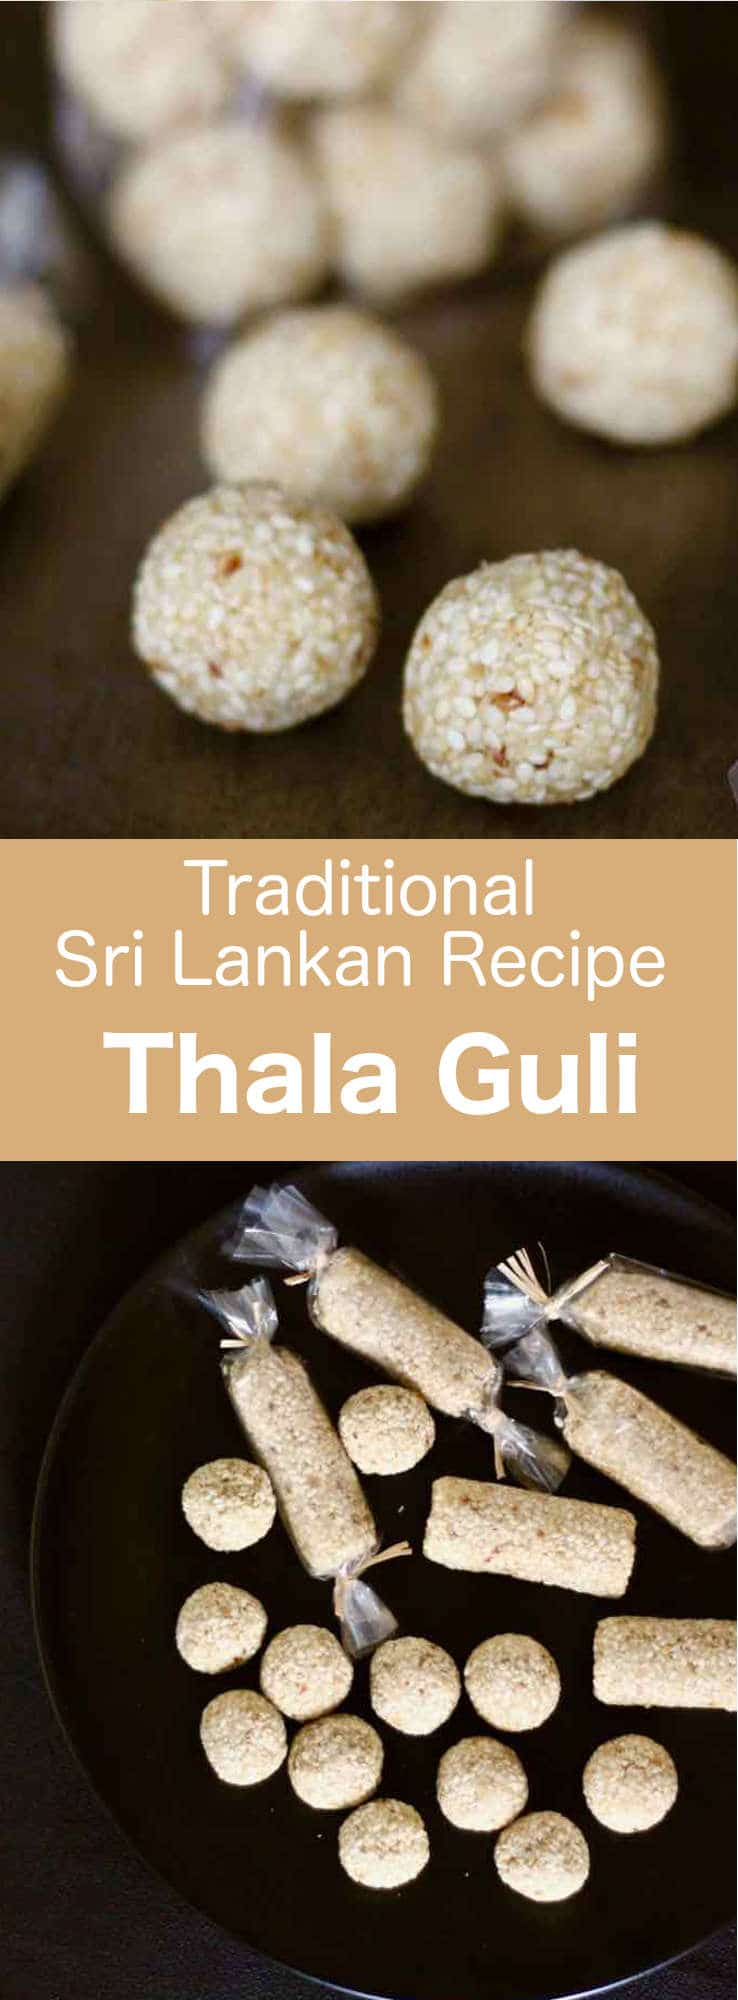 Thala guli is a delicious traditional Sri Lankan delicacy made from sesame, as well as palm sugar, palm syrup and coconut. It is shaped as a ball or a tube. #SriLanka #SriLankanCuisine #SriLankanDessert #Dessert #DessertRecipe #SriLankanRecipe #WorldCuisine #196flavors